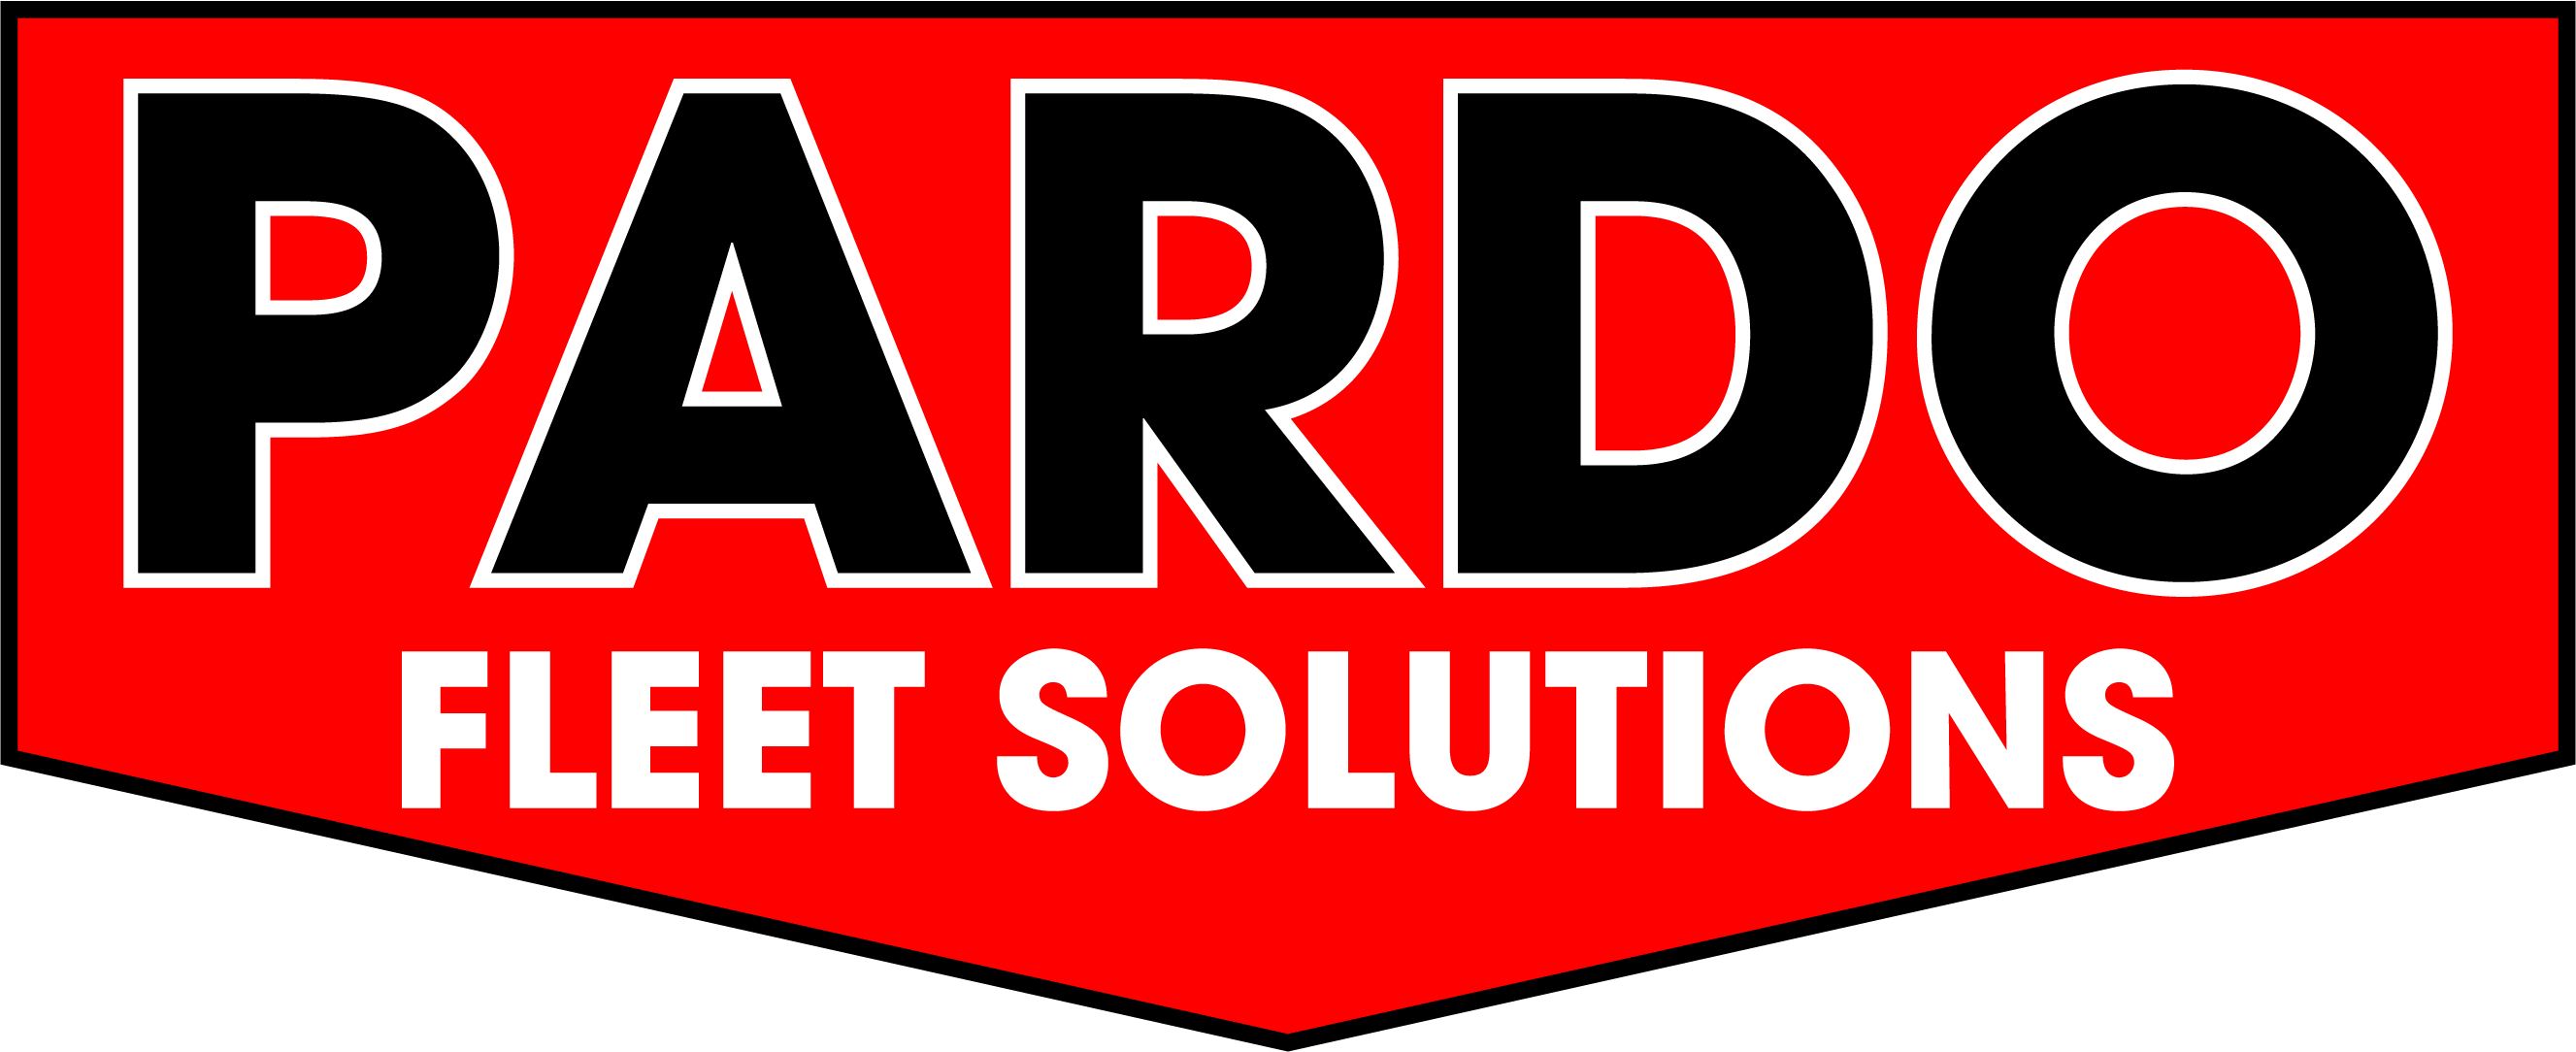 Pardo fleet Solutions Logo